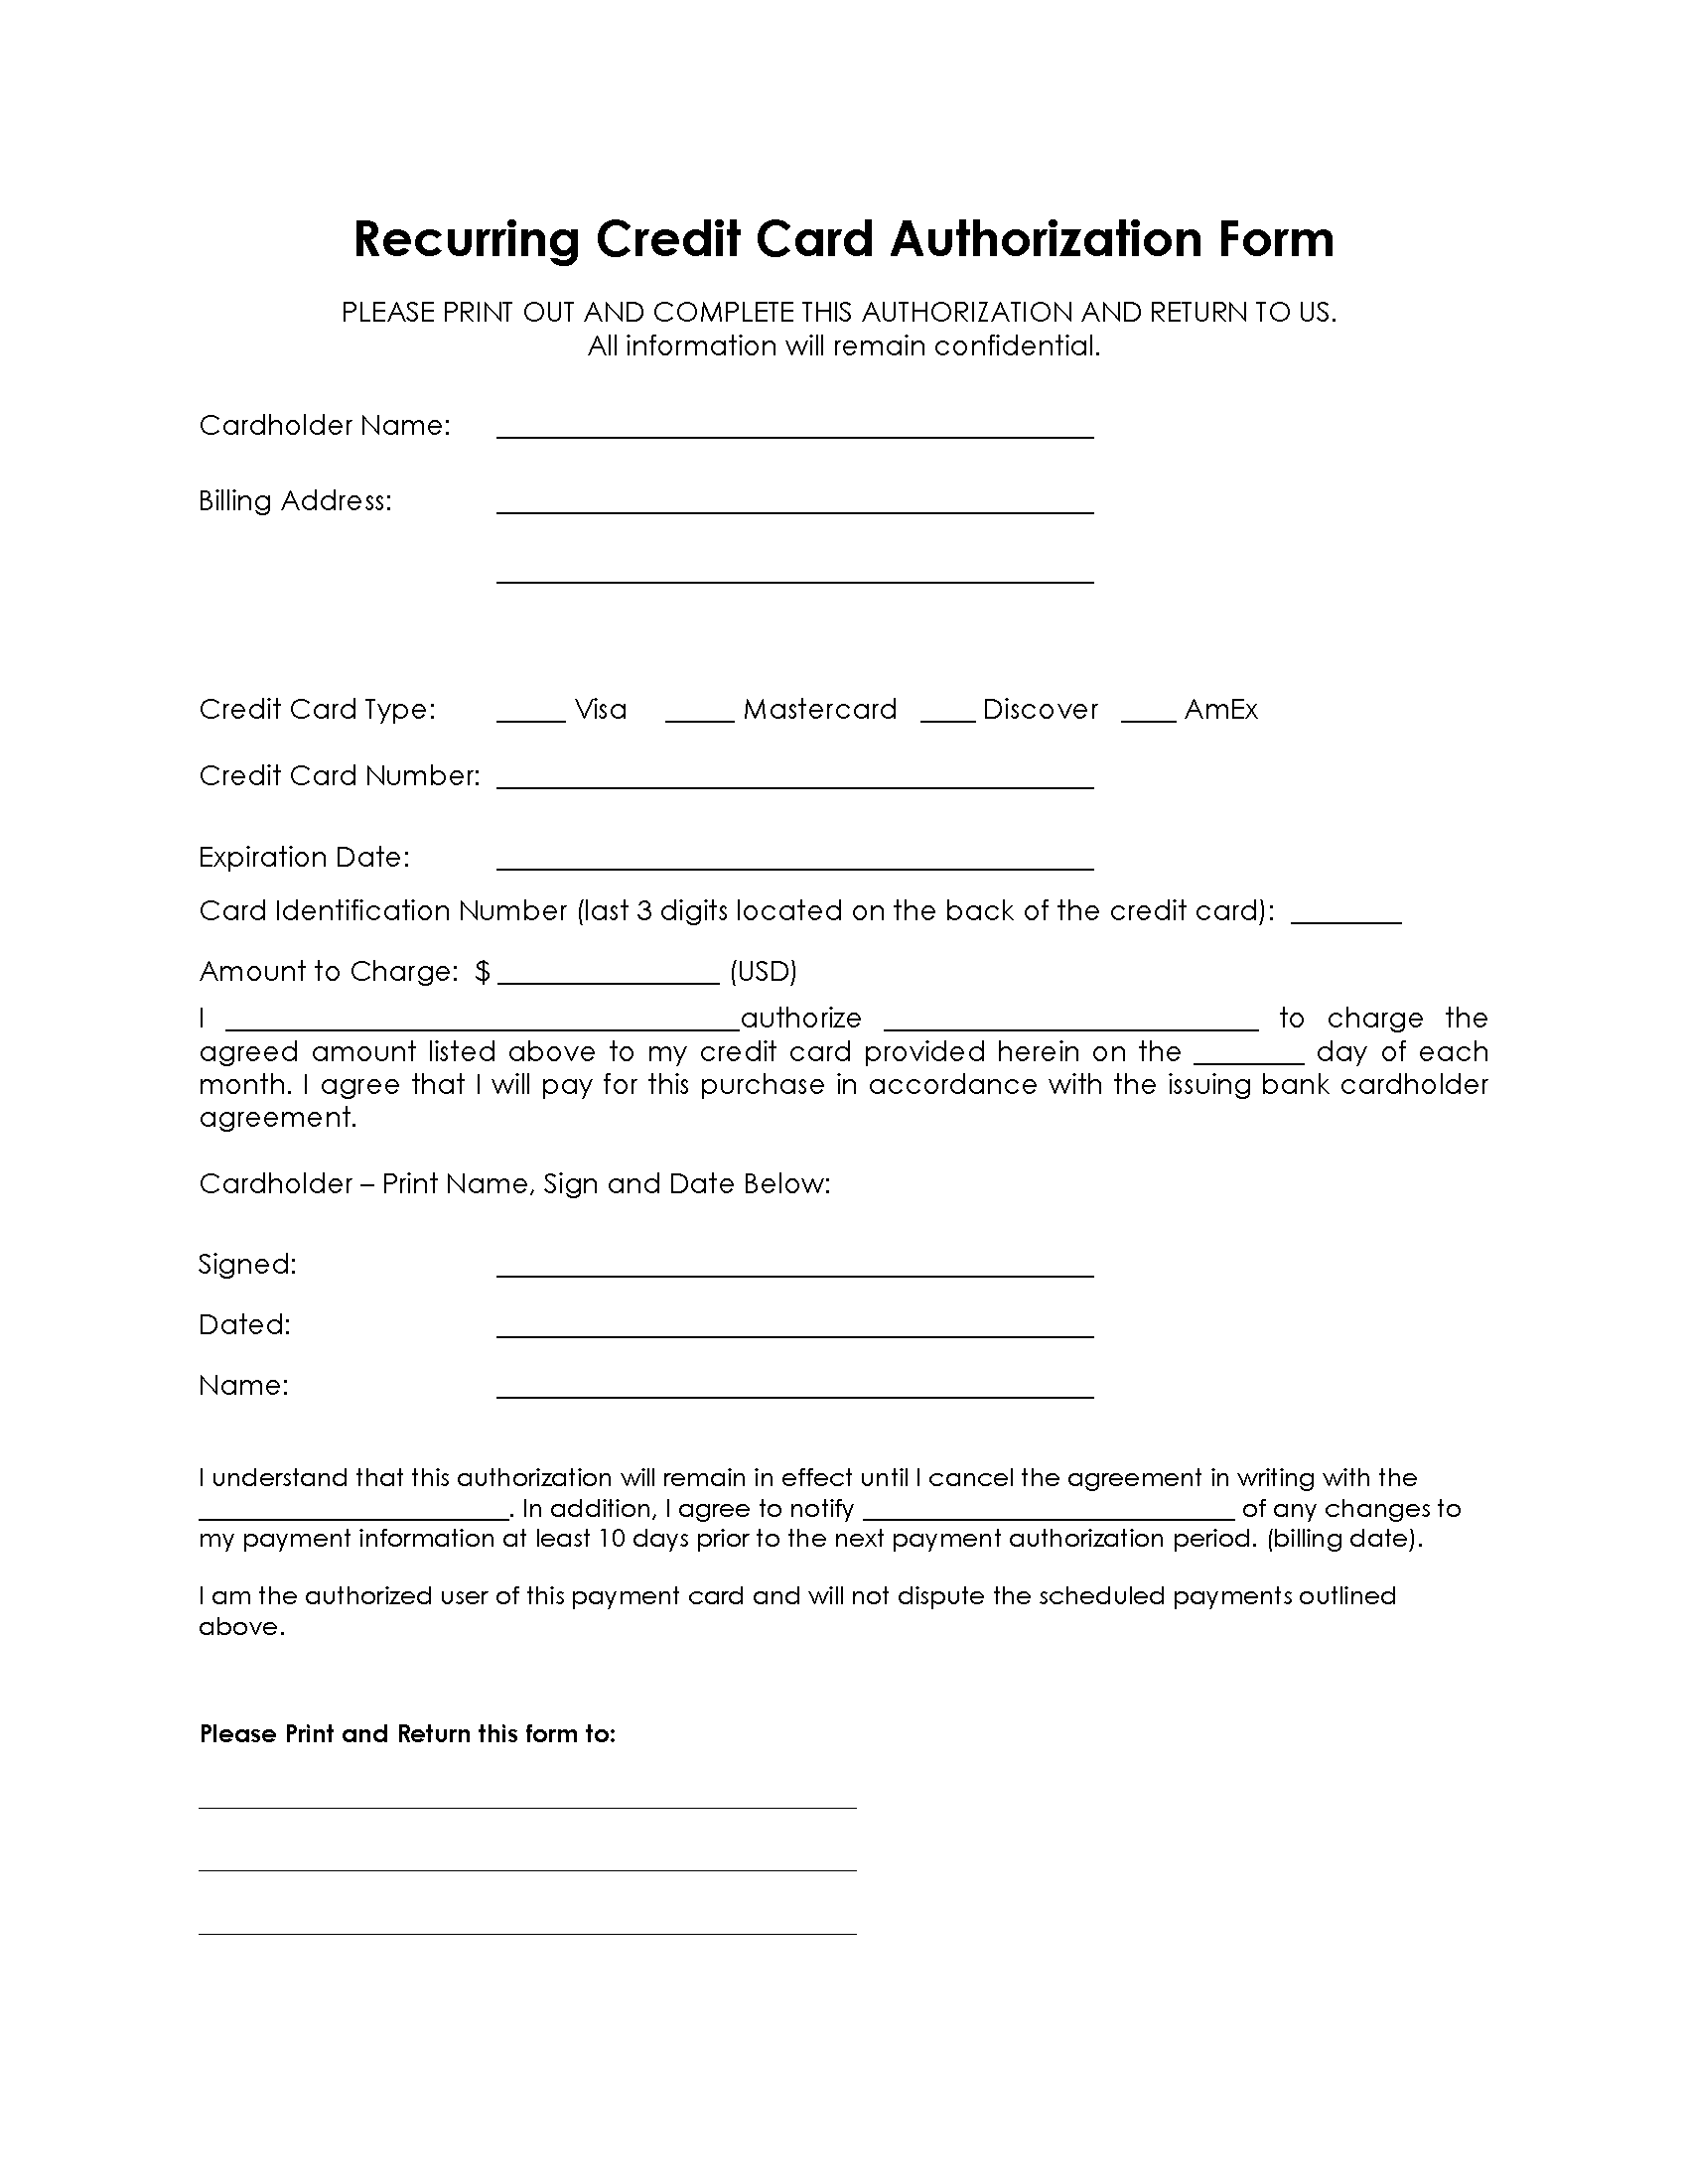 sample credit card authorization form 12 free documents in word